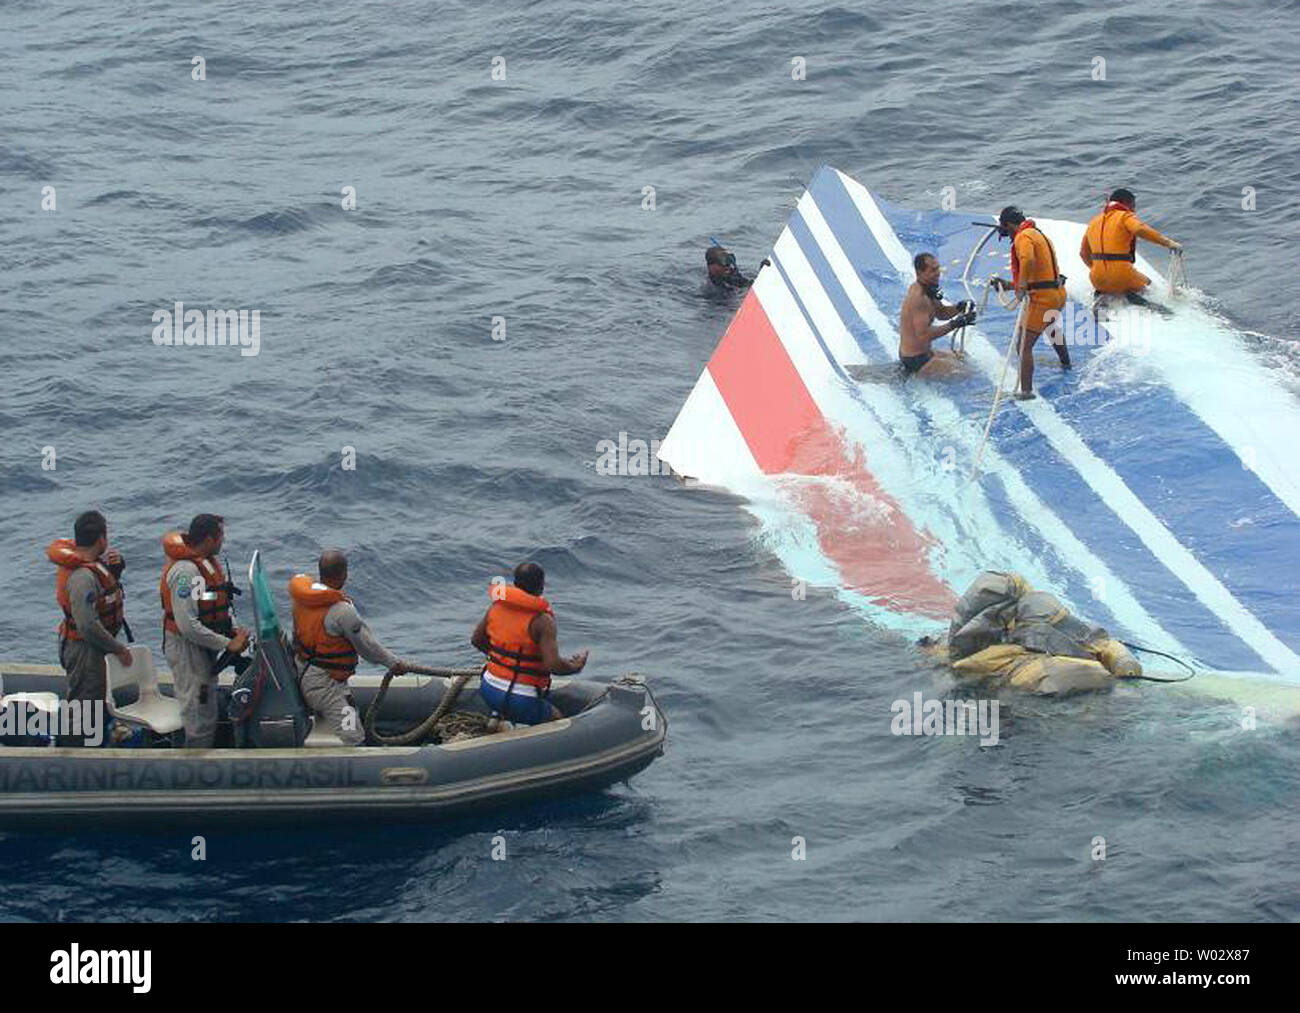 In this photo released by the Brazilian Air Force members of Brazil's Navy recover debris from the missing Air France jet in the Atlantic Ocean, June 8, 2009. The U.S. Navy is sending a team equipped with underwater listening devices to assist in the search for the missing black box. UPI/Brazilian Air Force - Stock Image